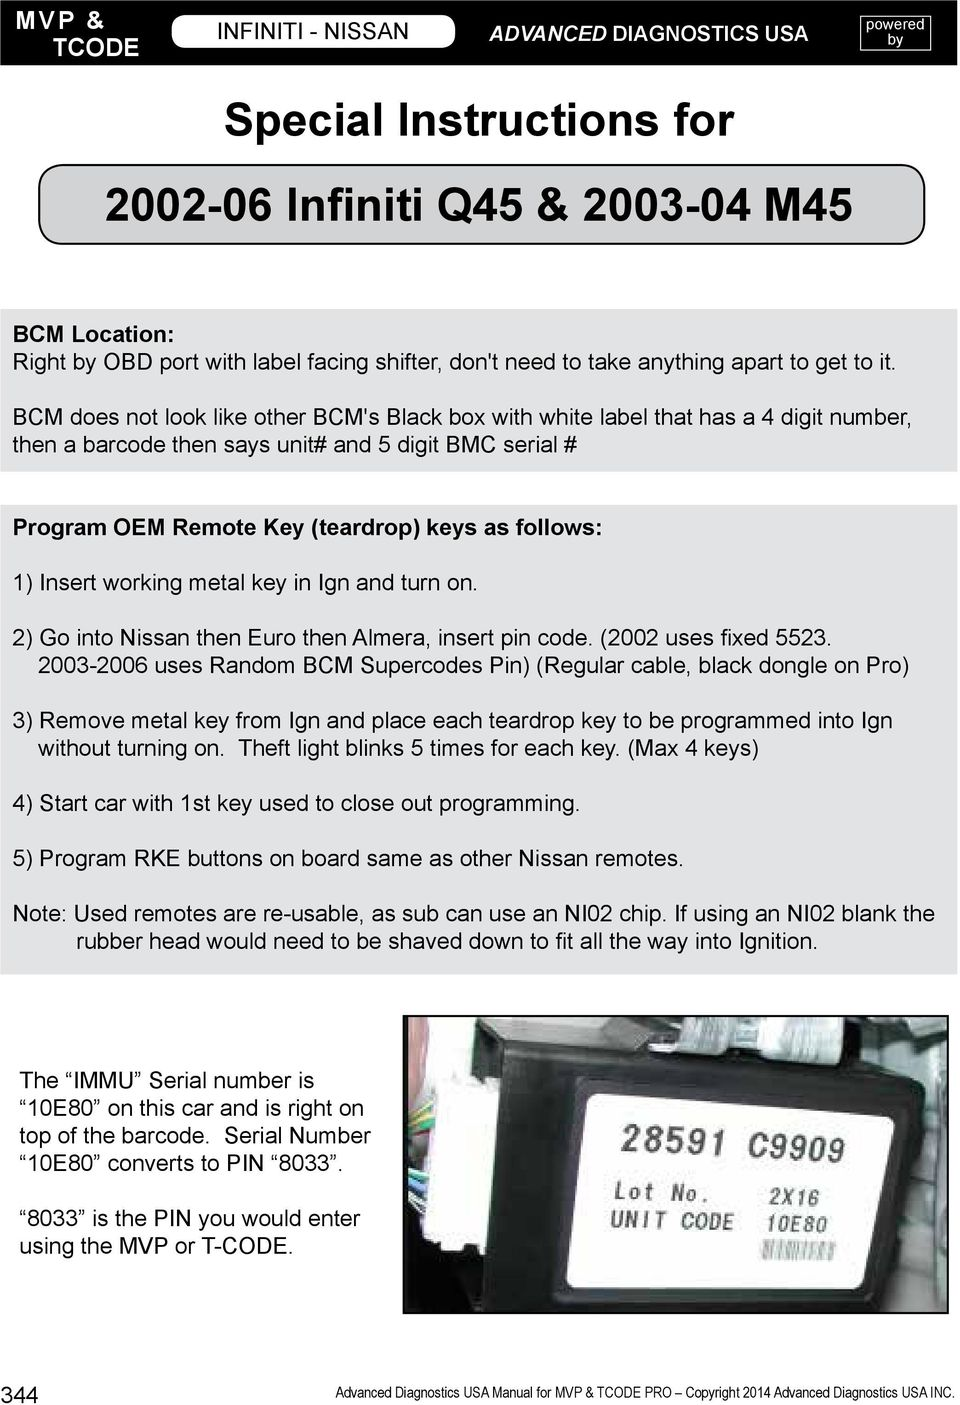 infiniti nissan this section contains pdf bcm does not look like other bcm s black box white label that has a 4